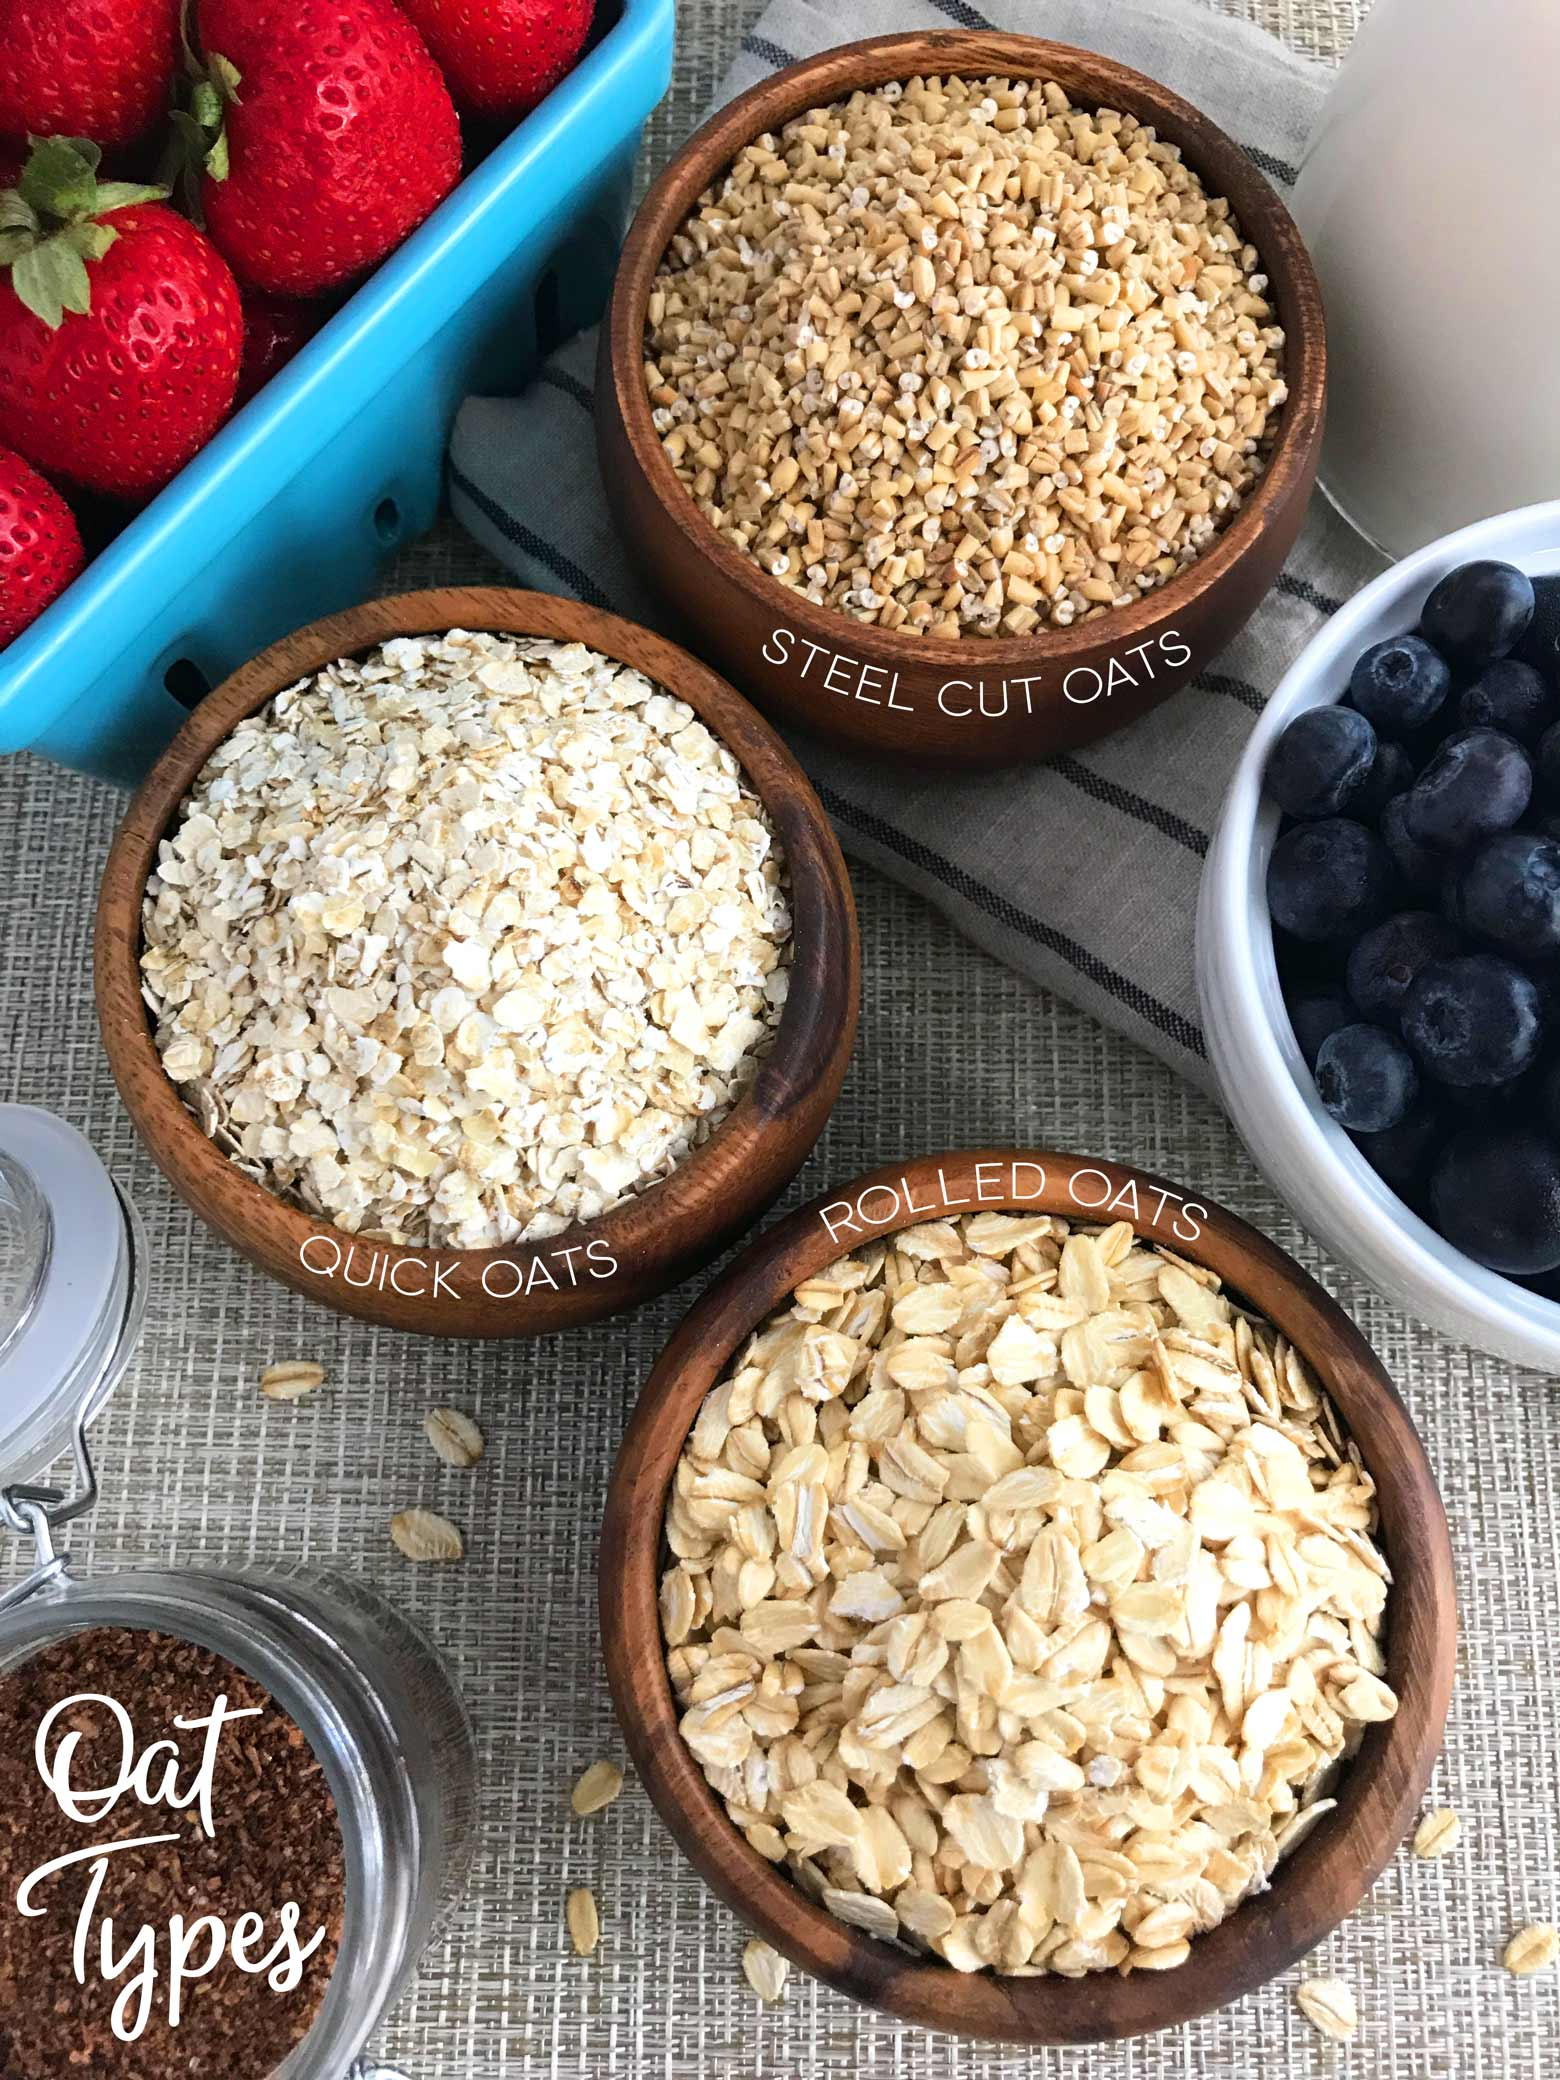 Shows three different oat types: steel cut oats, quick oats, rolled oats